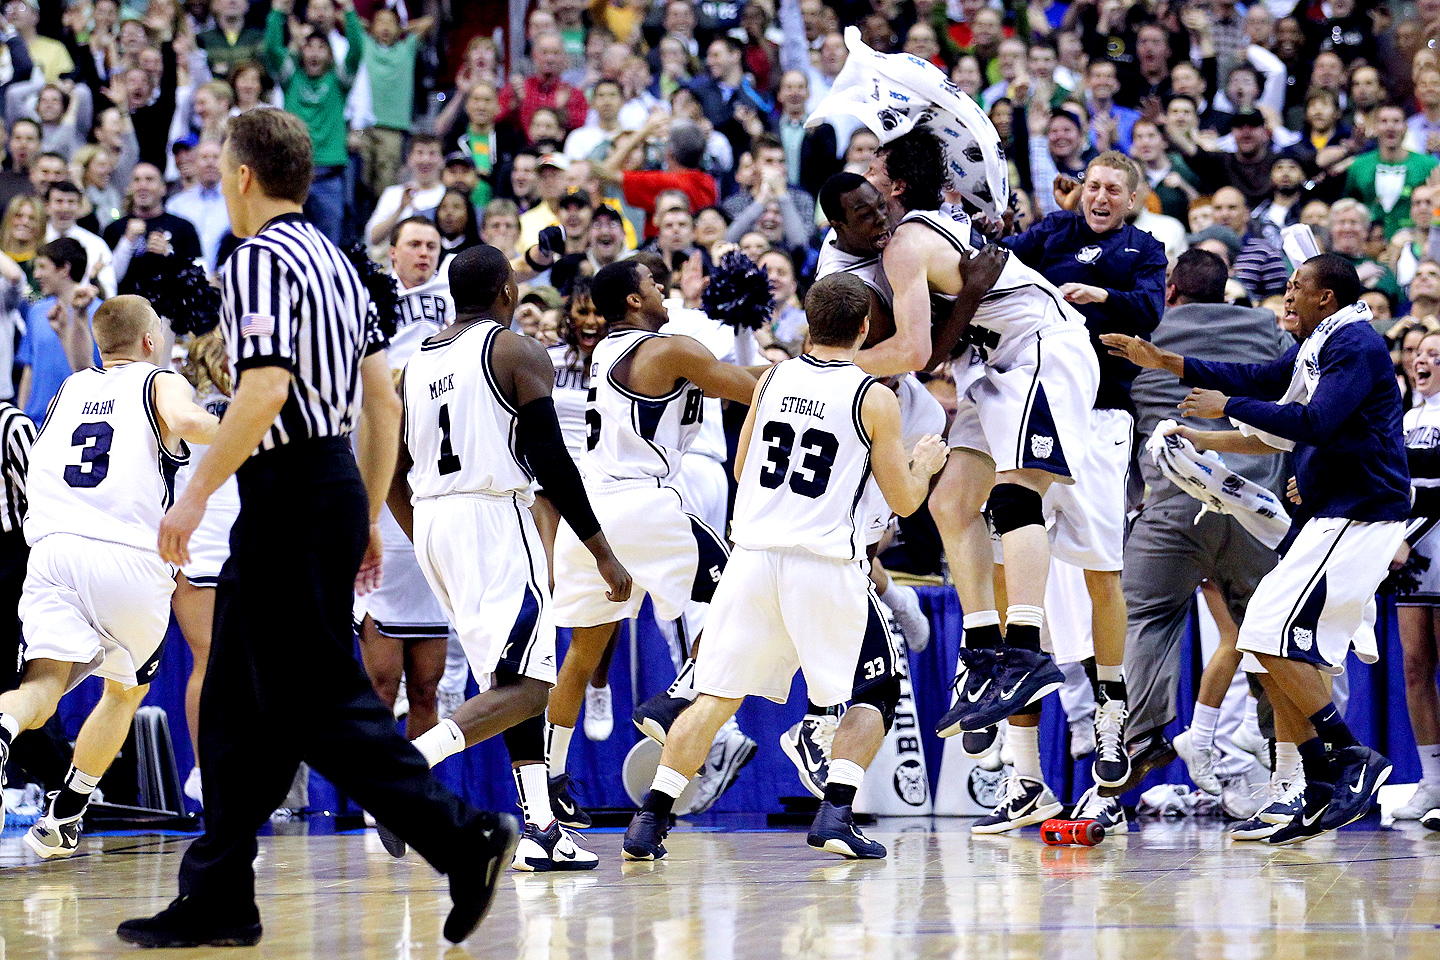 Butler Bulldogs celebrate